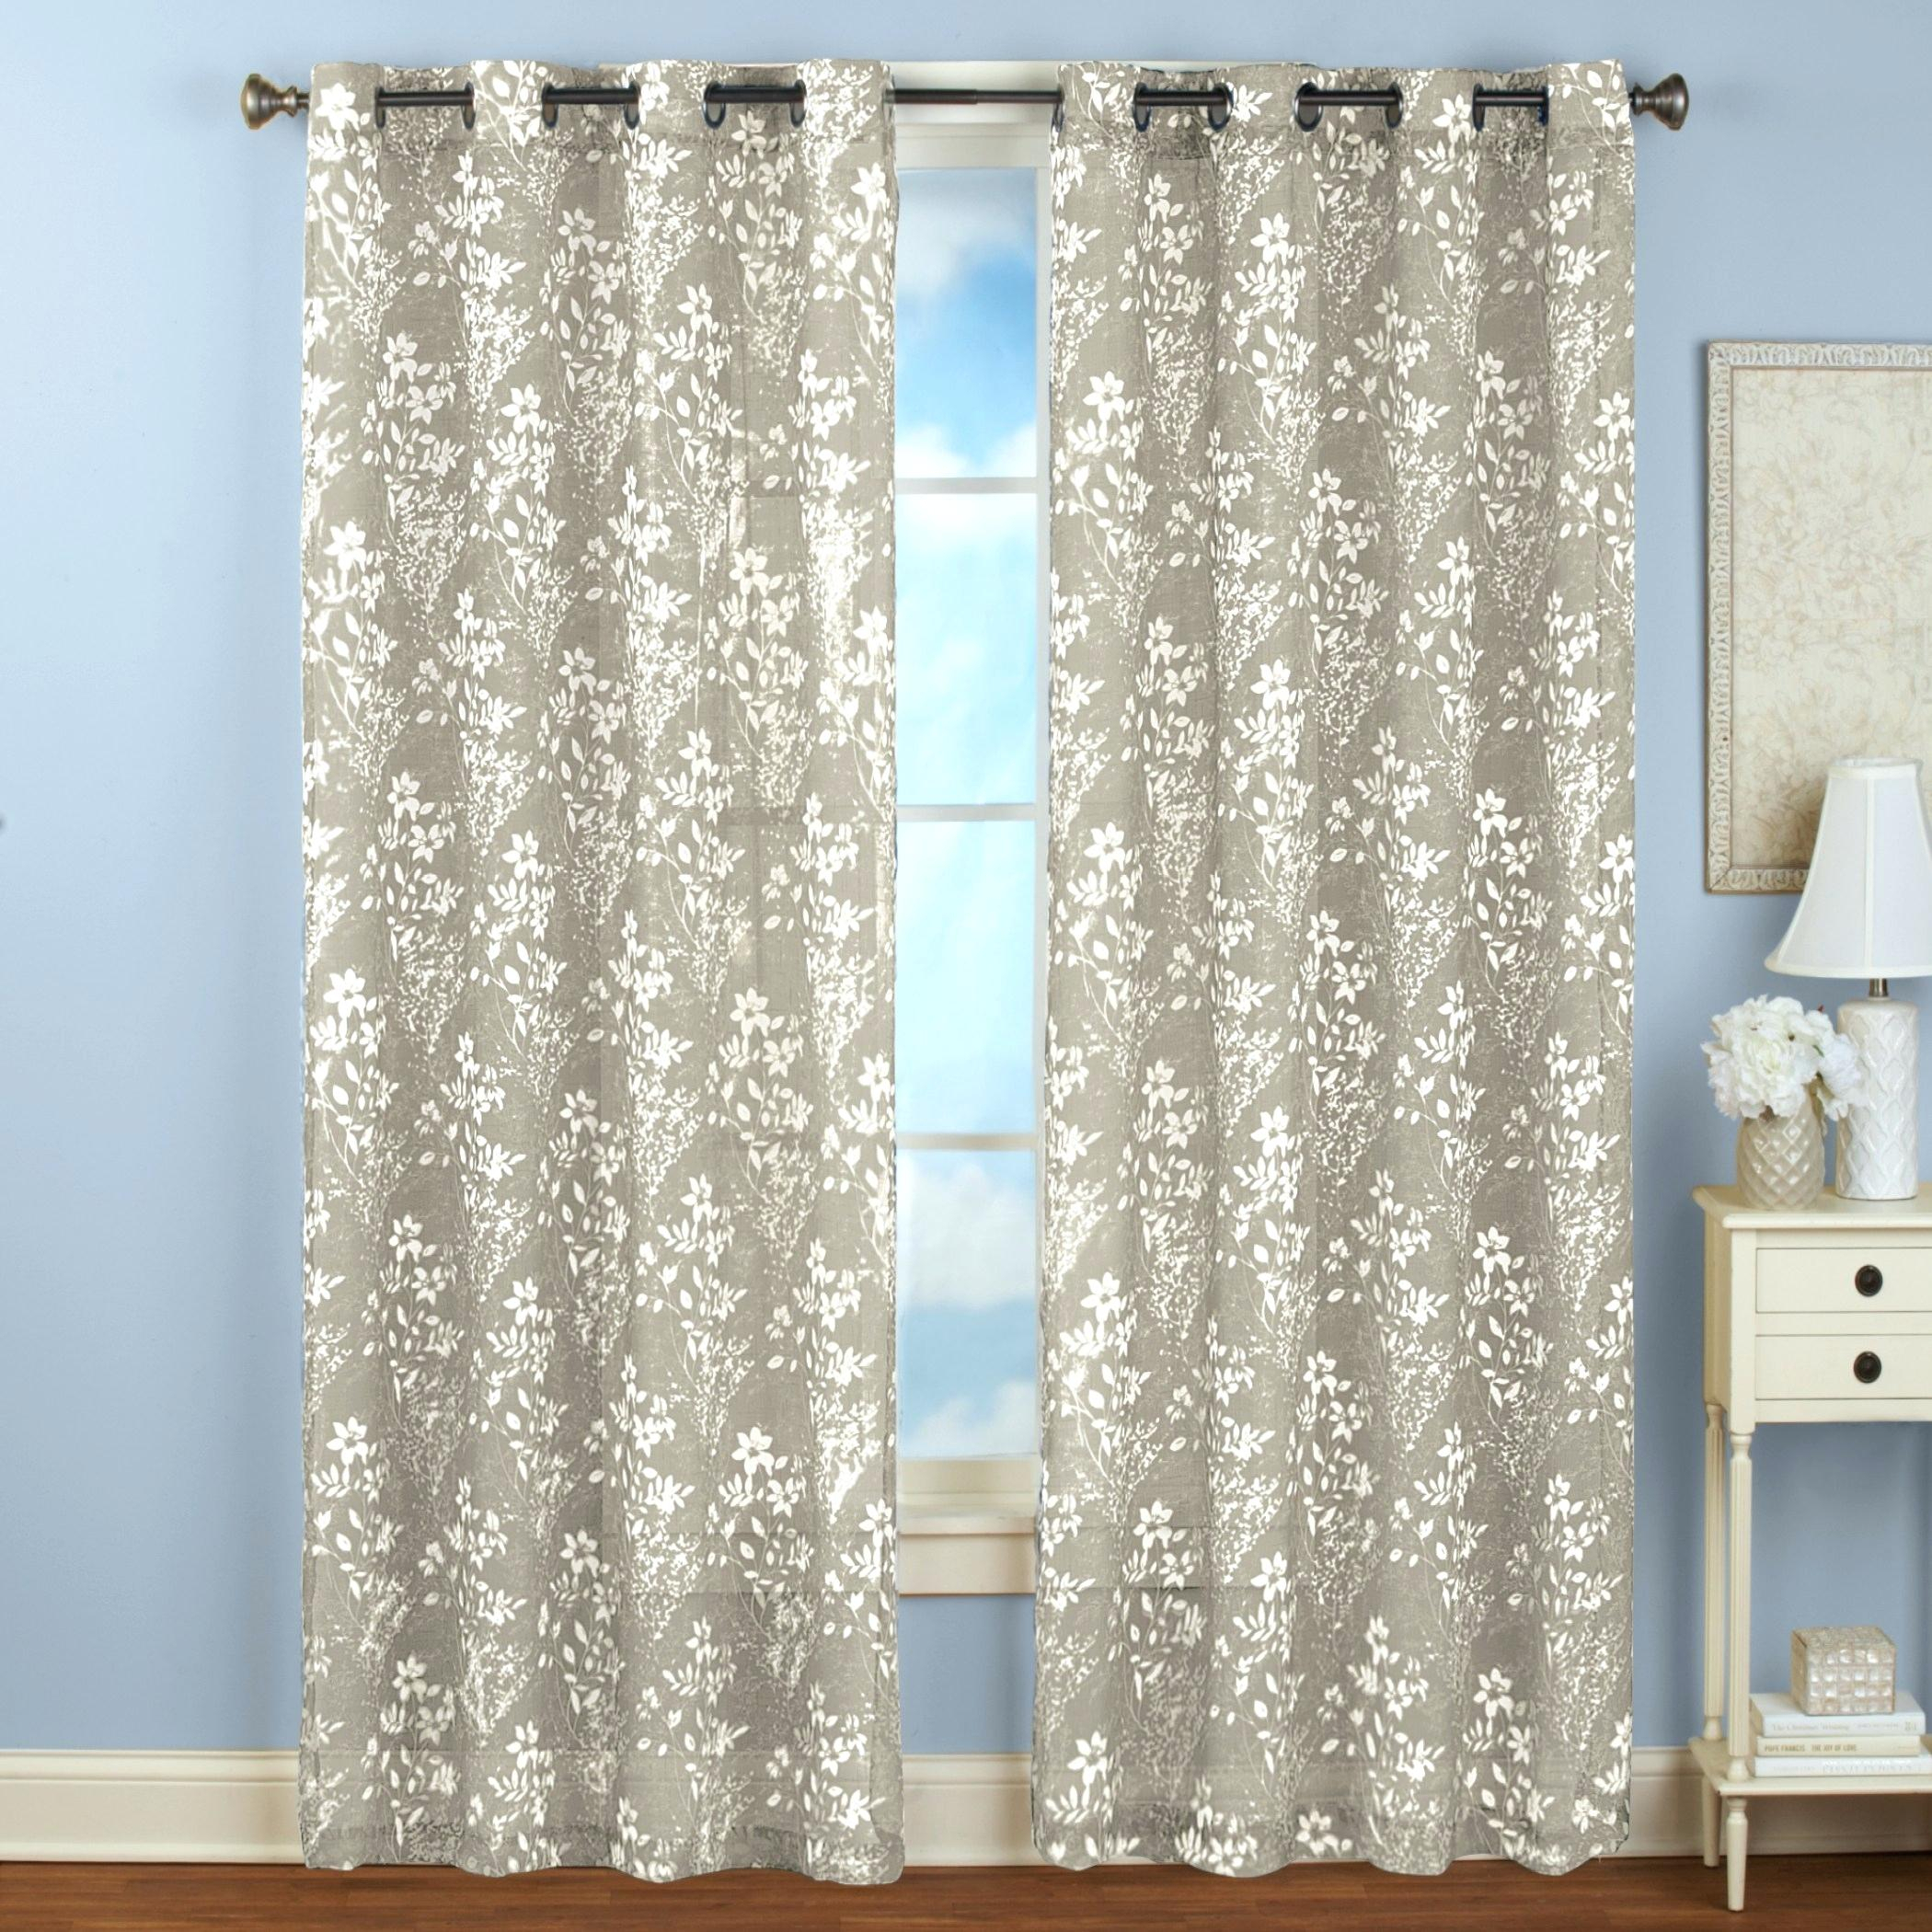 Grommet Top Curtain Panels Extra Wide Printed Blackout Within Forest Hill Woven Blackout Grommet Top Curtain Panel Pairs (View 19 of 20)